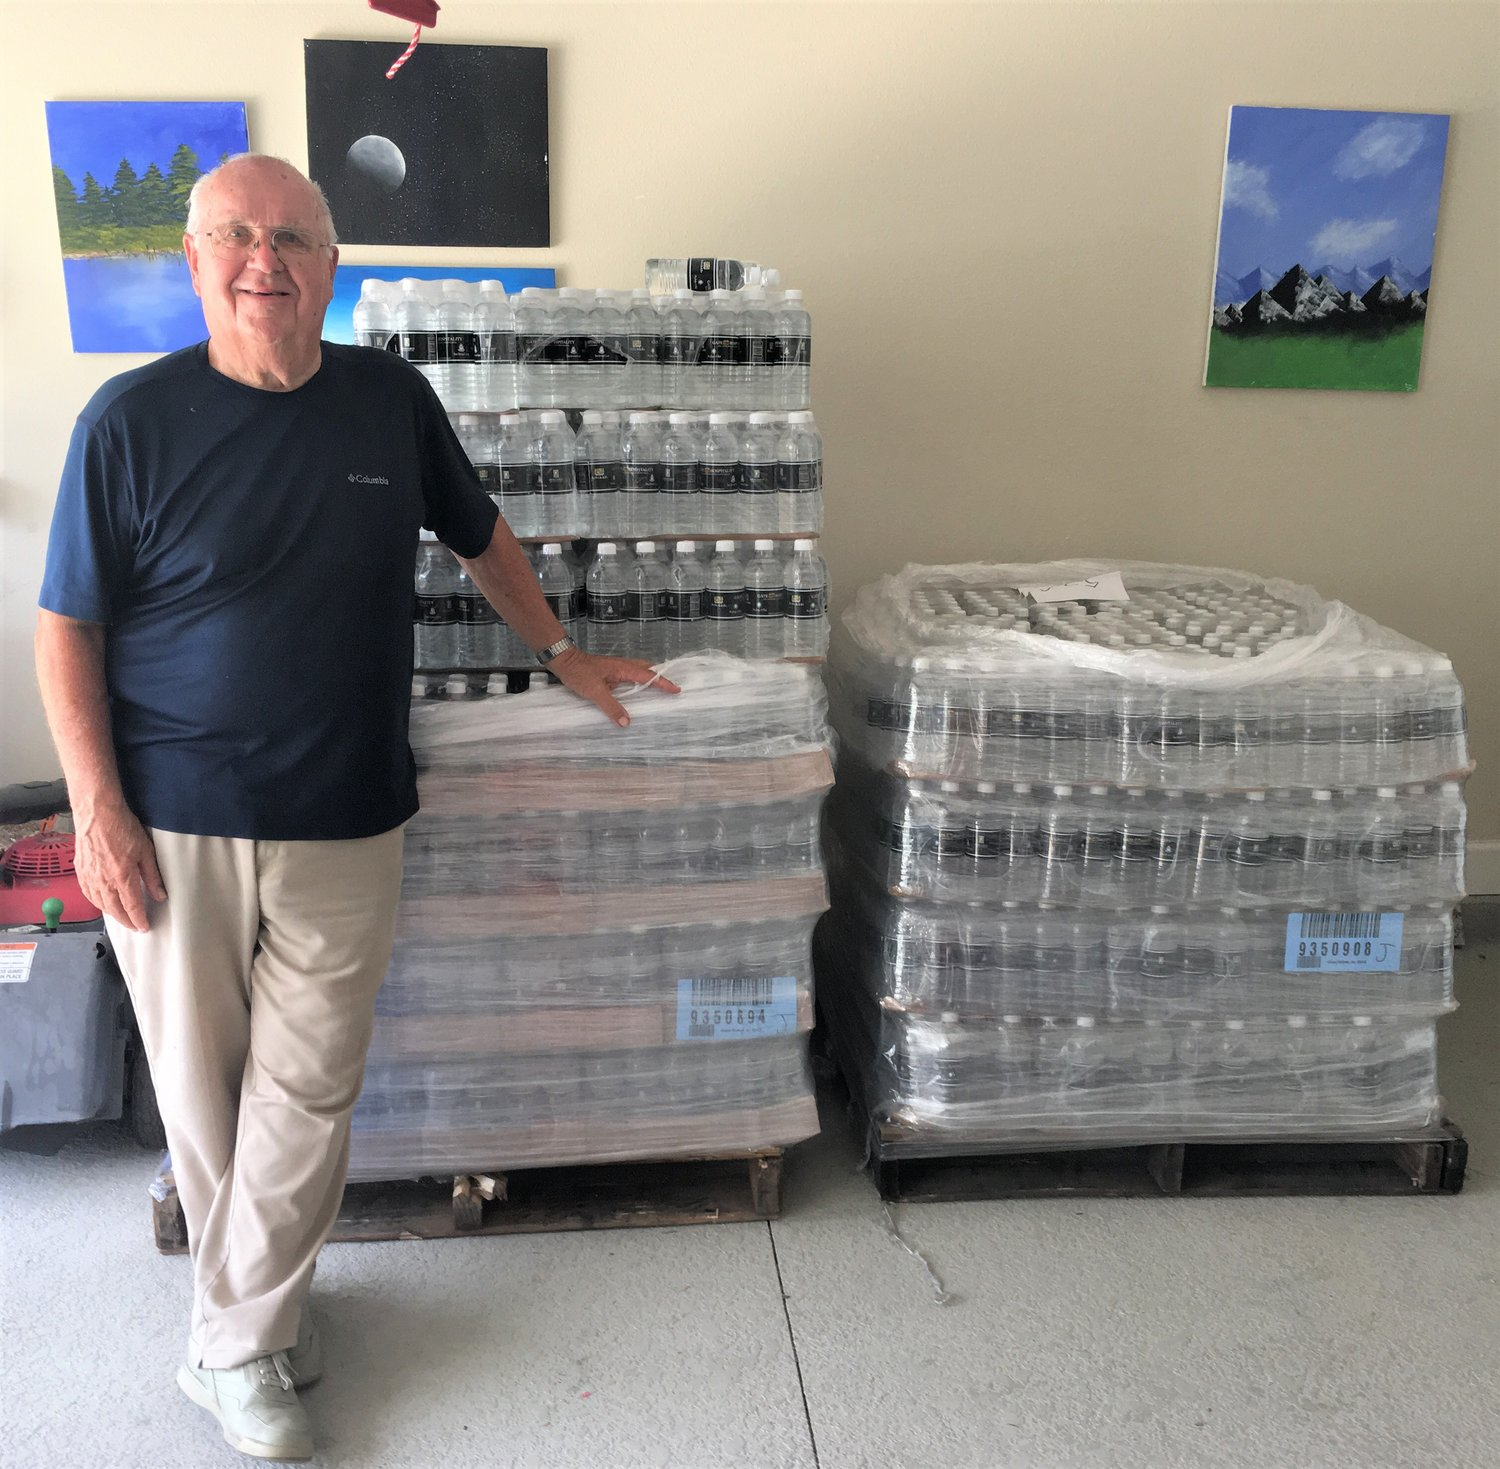 Gate Hospitality donated 8,000 bottles of water to Ray George.